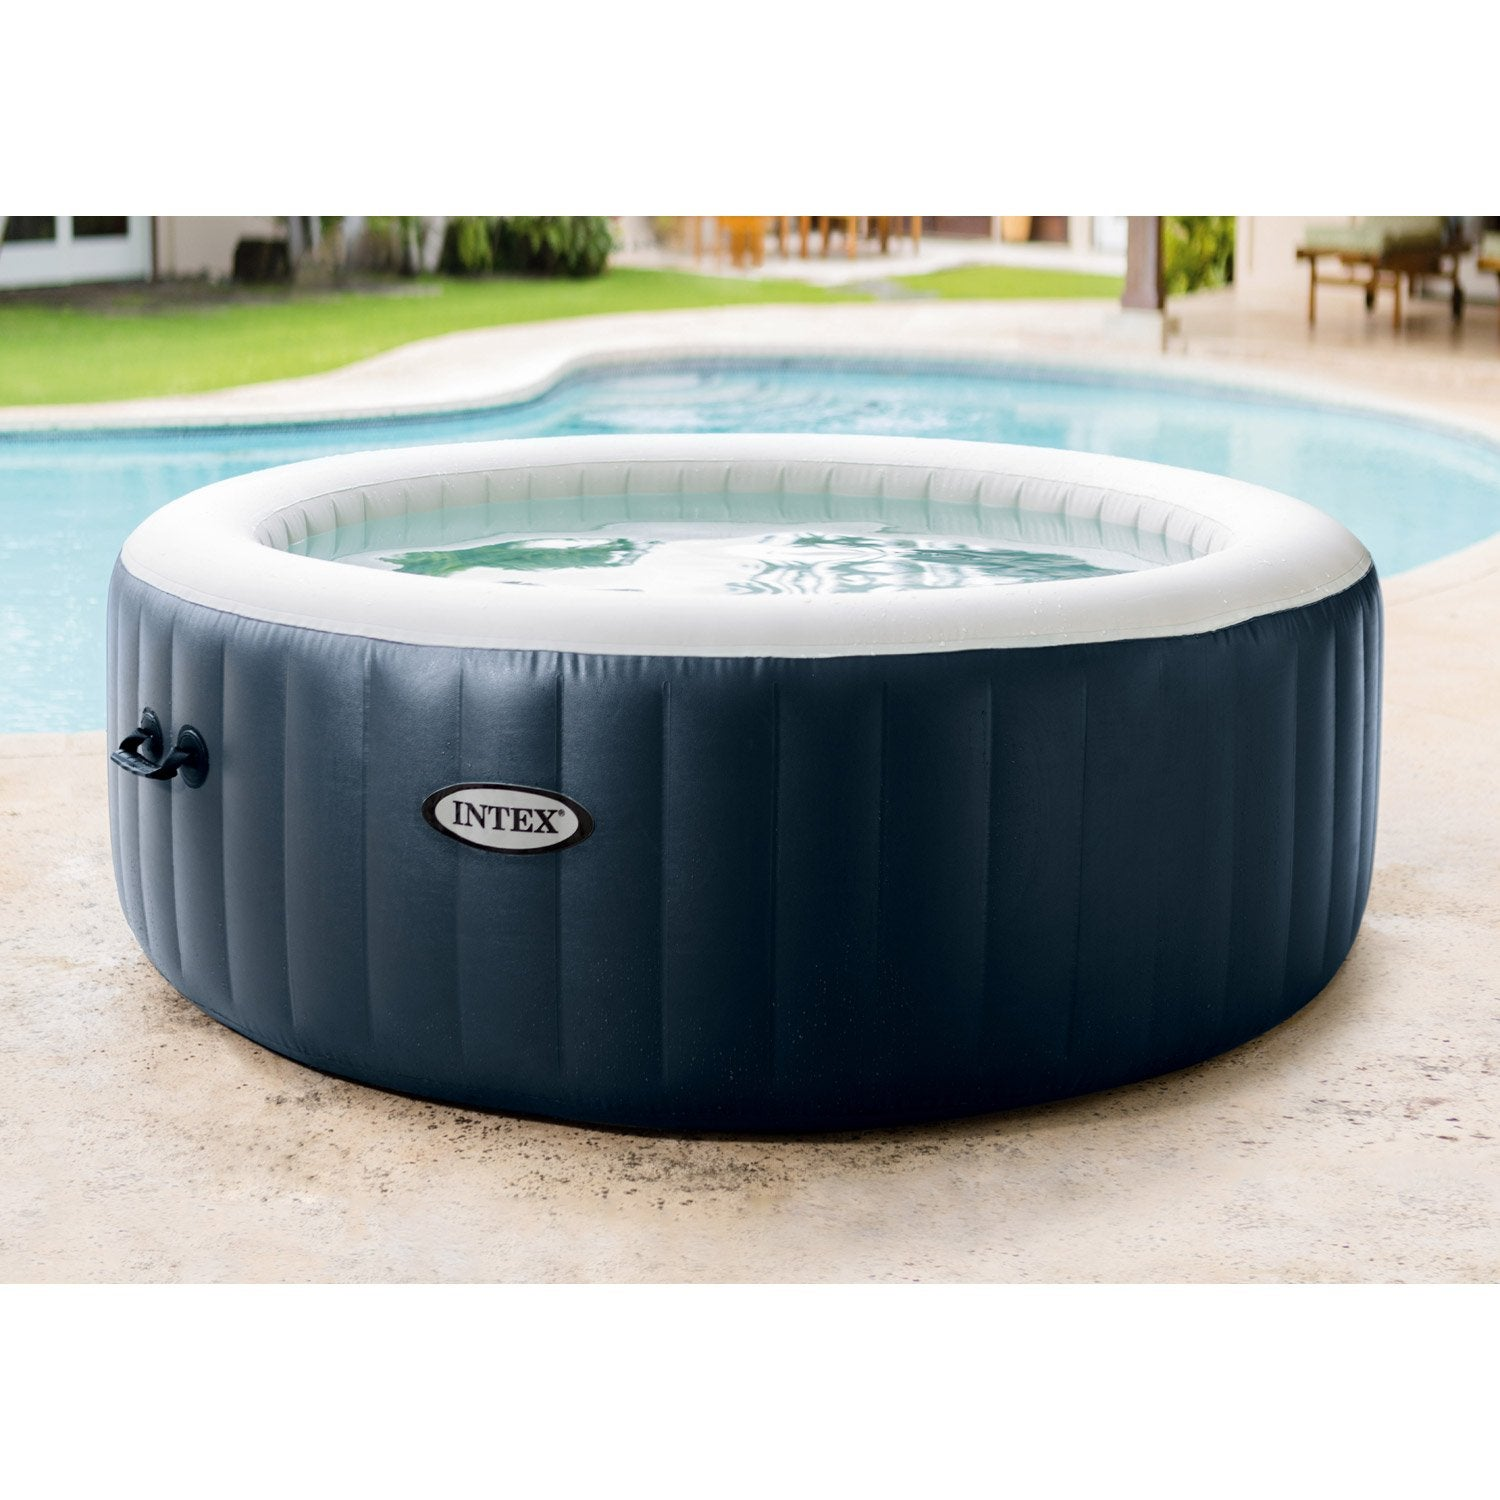 spa gonflable intex purespa bulles blue navy rond 6 places assises leroy merlin. Black Bedroom Furniture Sets. Home Design Ideas